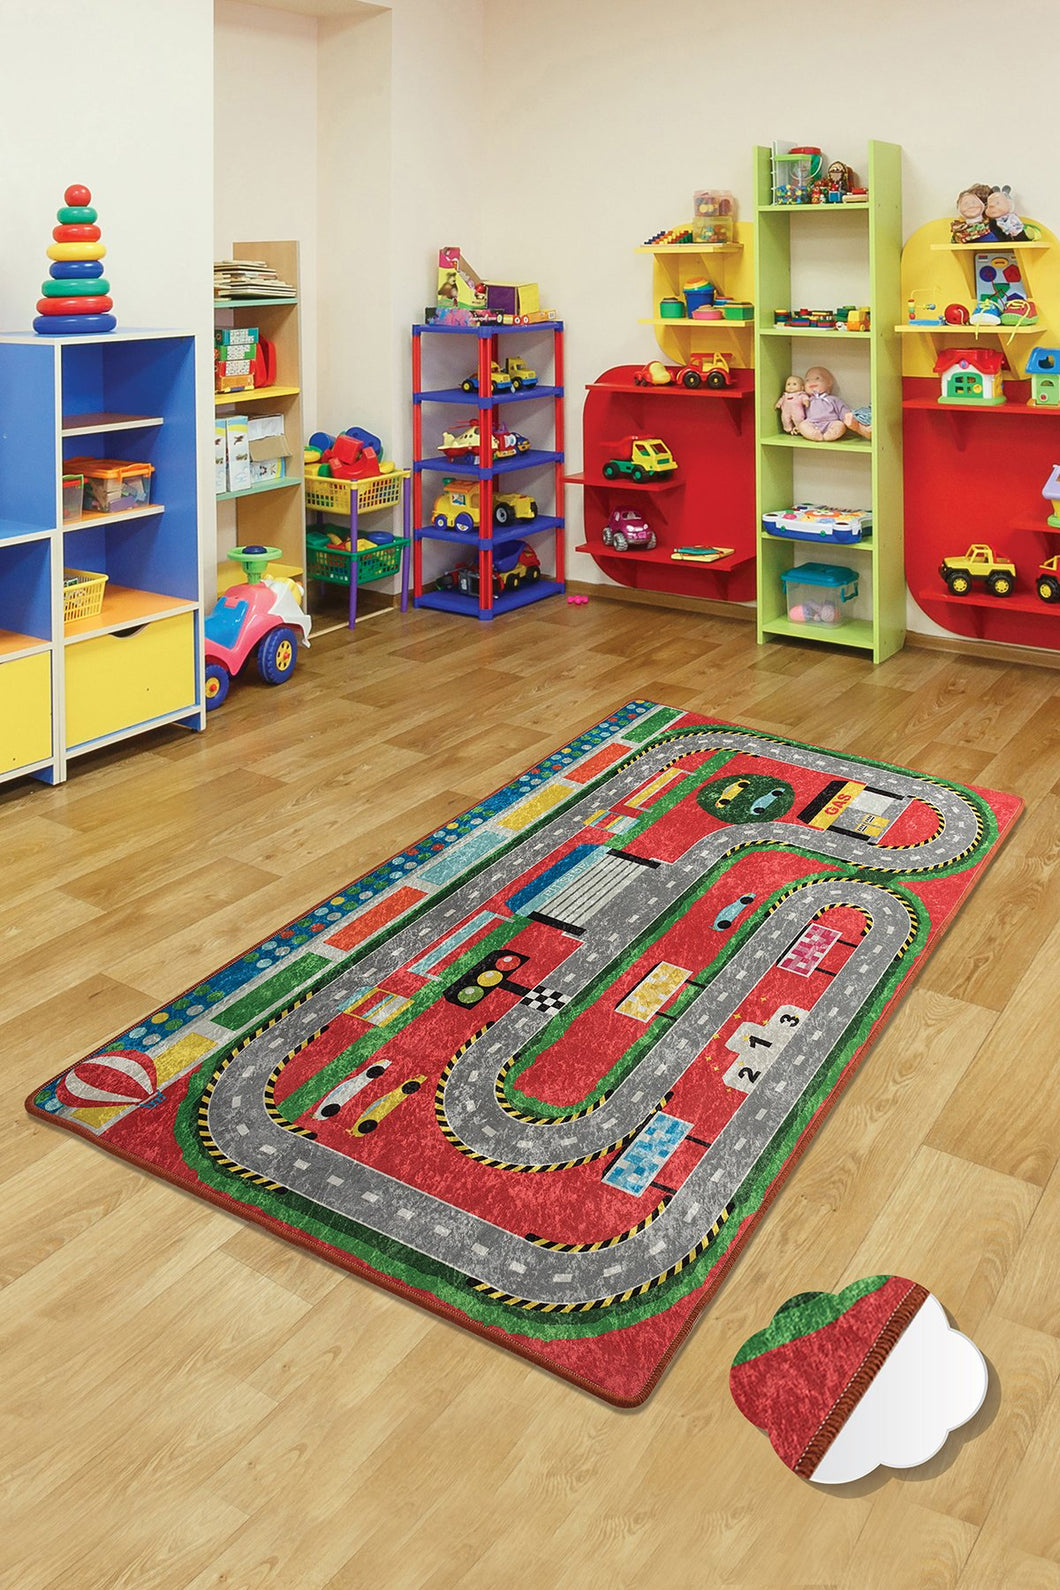 RugstoreX Station Red Rugs for kids Highway  3'x 5' 39